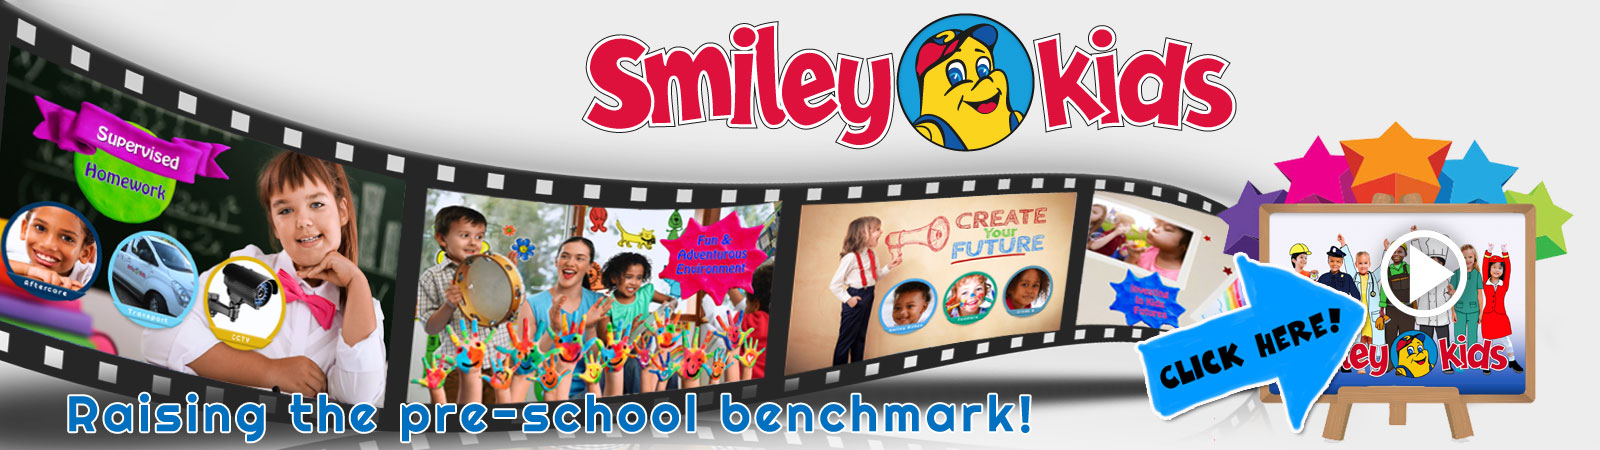 Smiley Kids Morningside Video